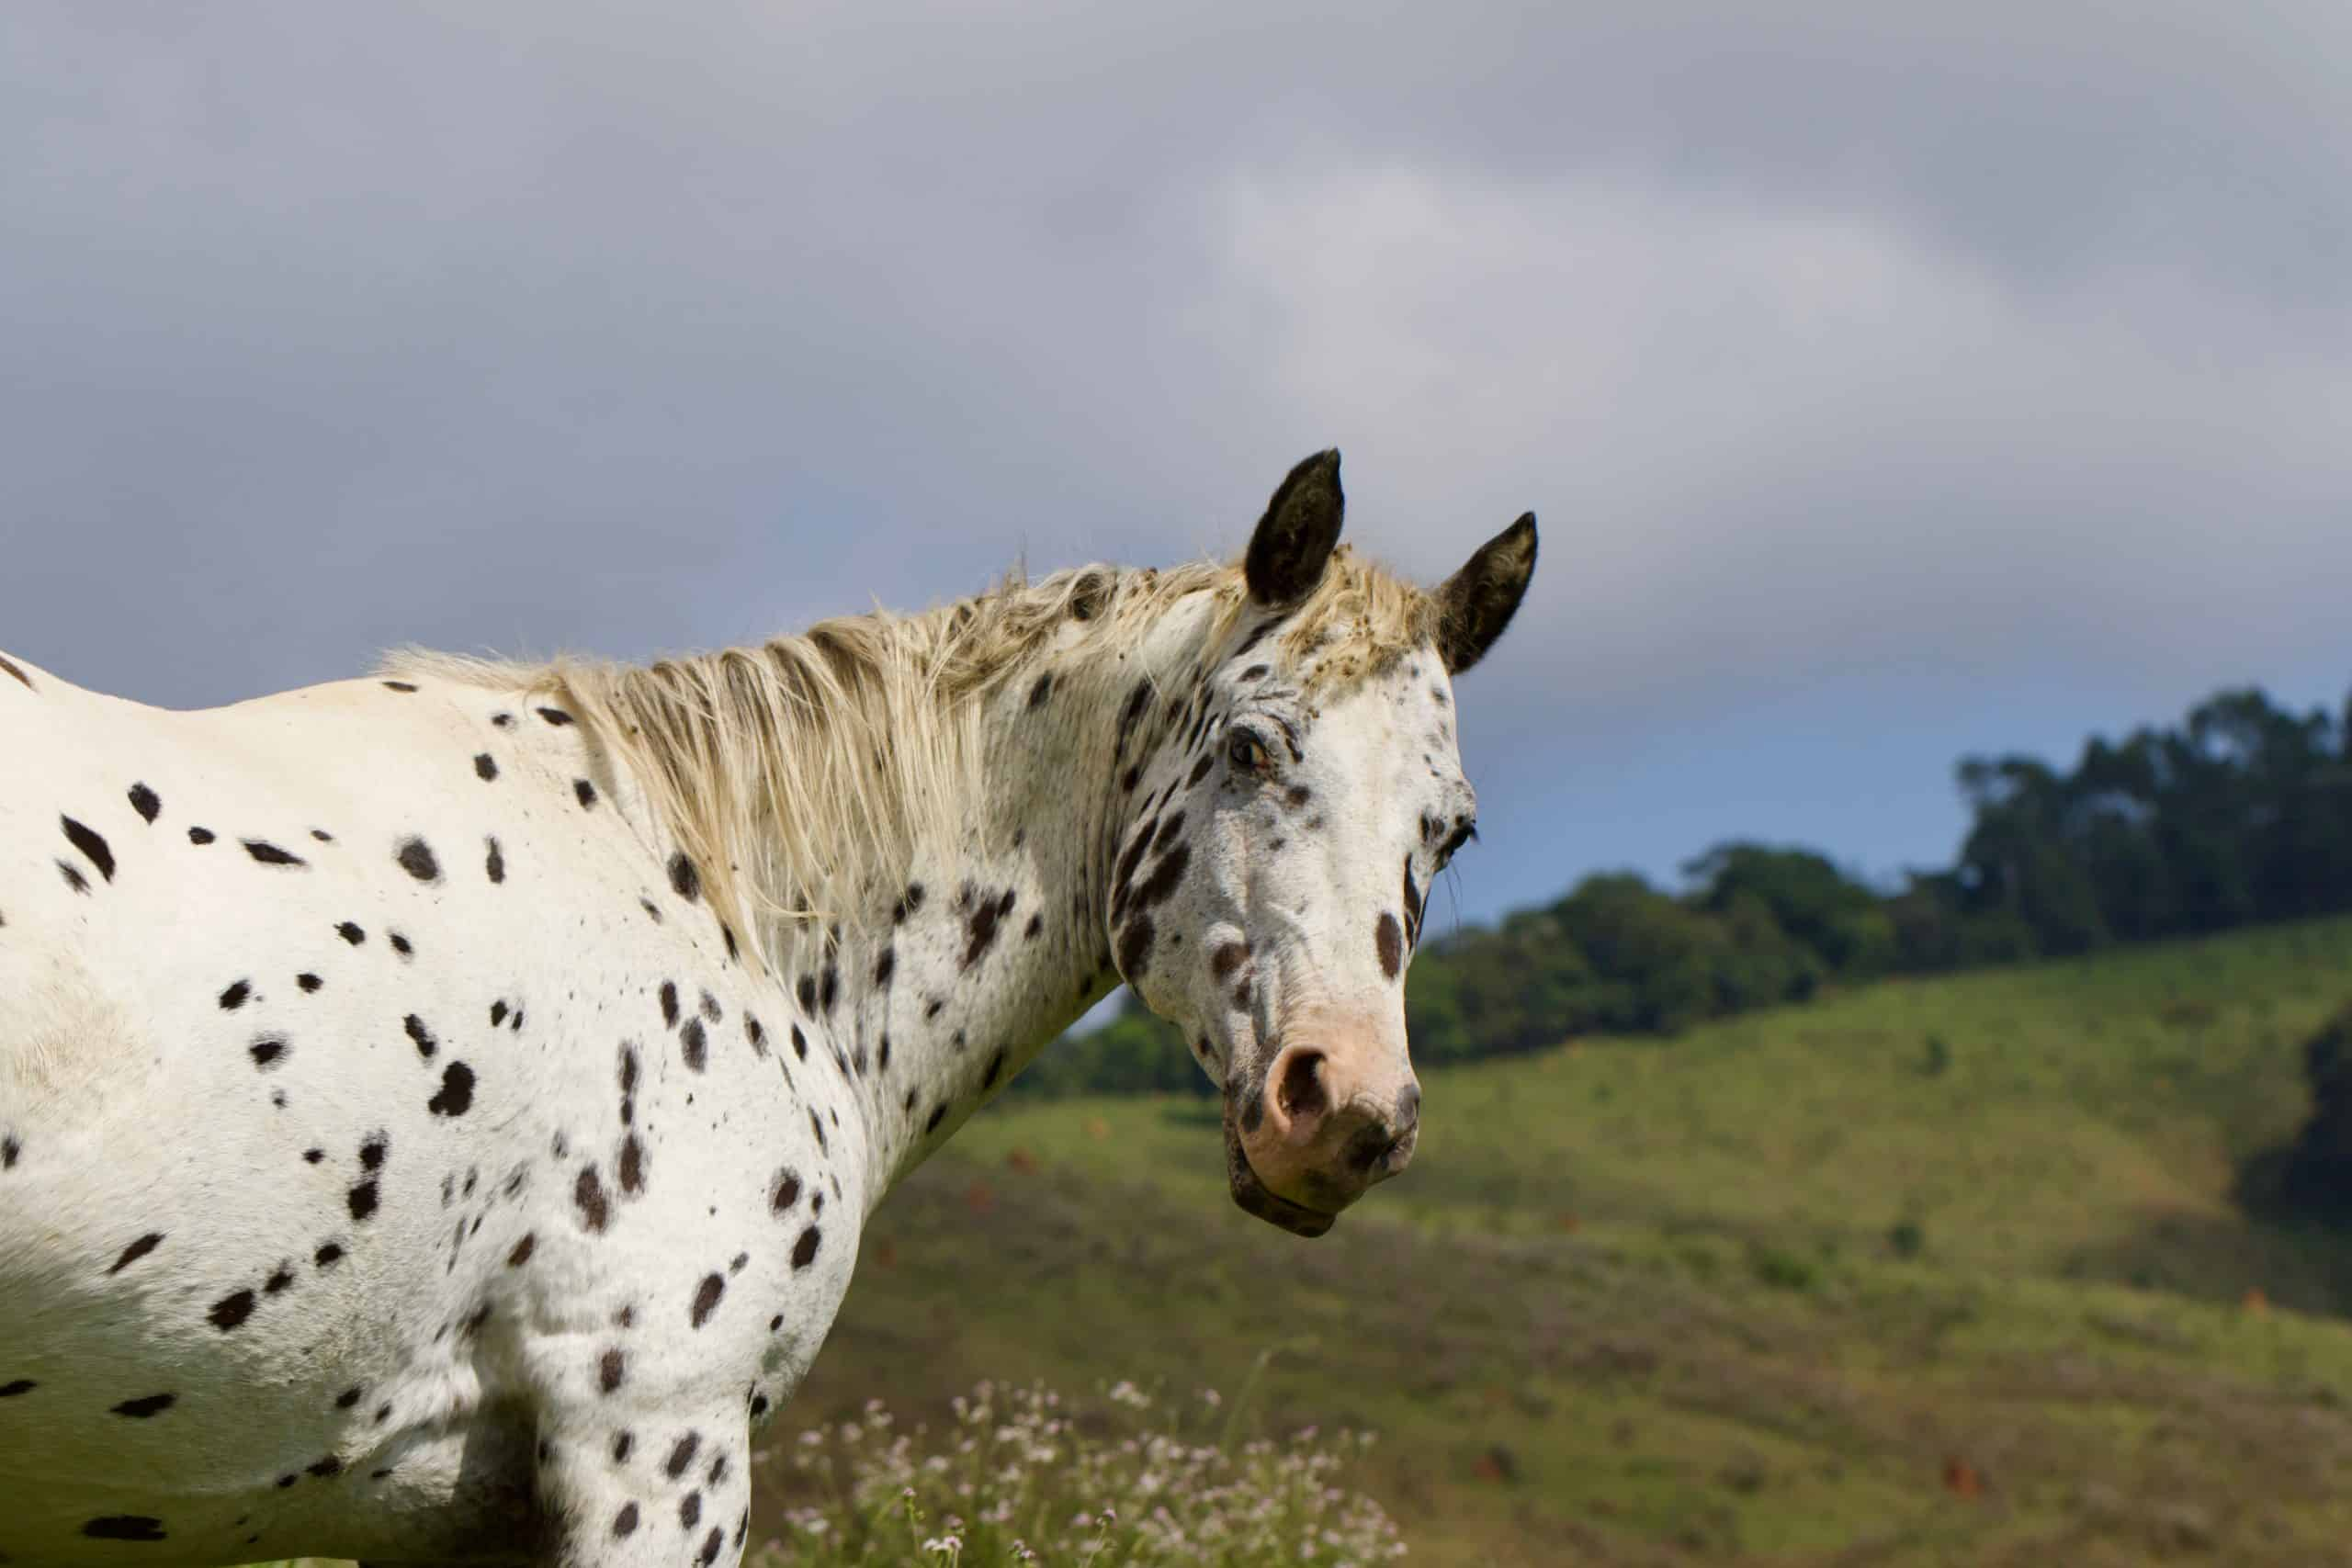 spotted horse breed